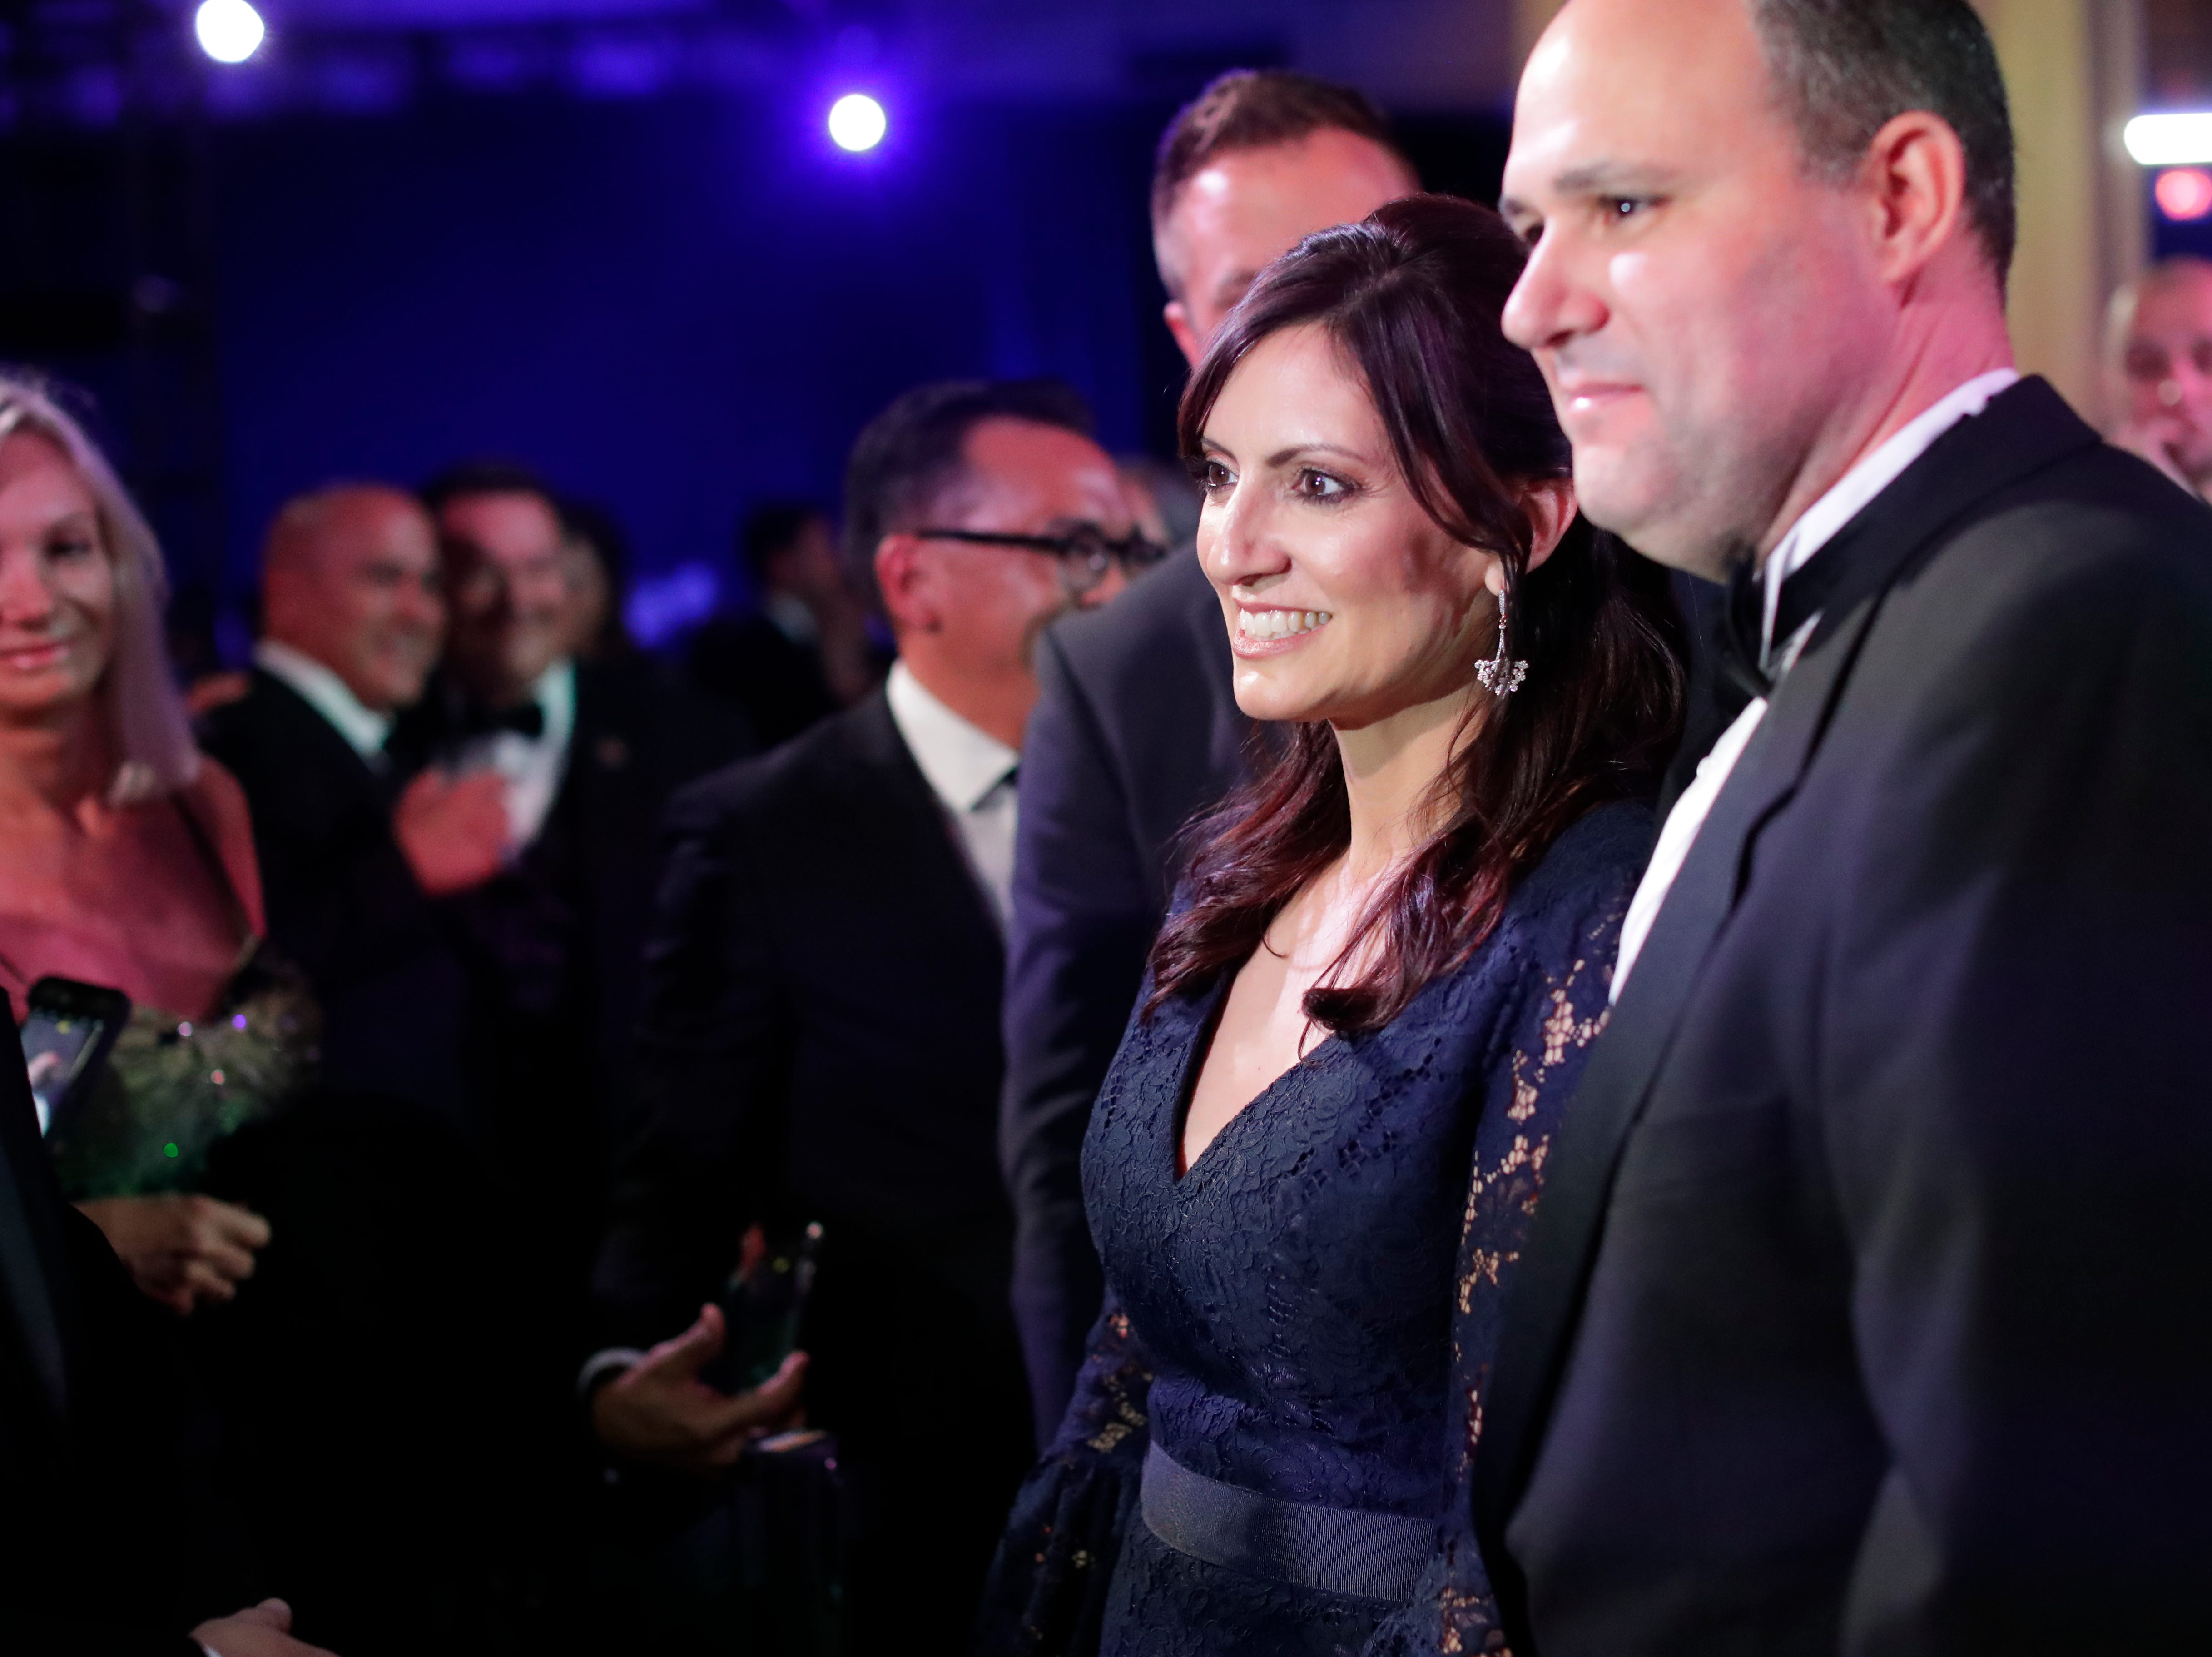 Hundreds of guests from all over Florida attend Florida's 46th Governor's Inaugural Ball at the Tucker Civic Center, Tuesday, Jan. 8, 2019. Lt. Gov. Jeanette Nunez, center, poses for a photo with her husband, Adrian Nunez, at the ball.